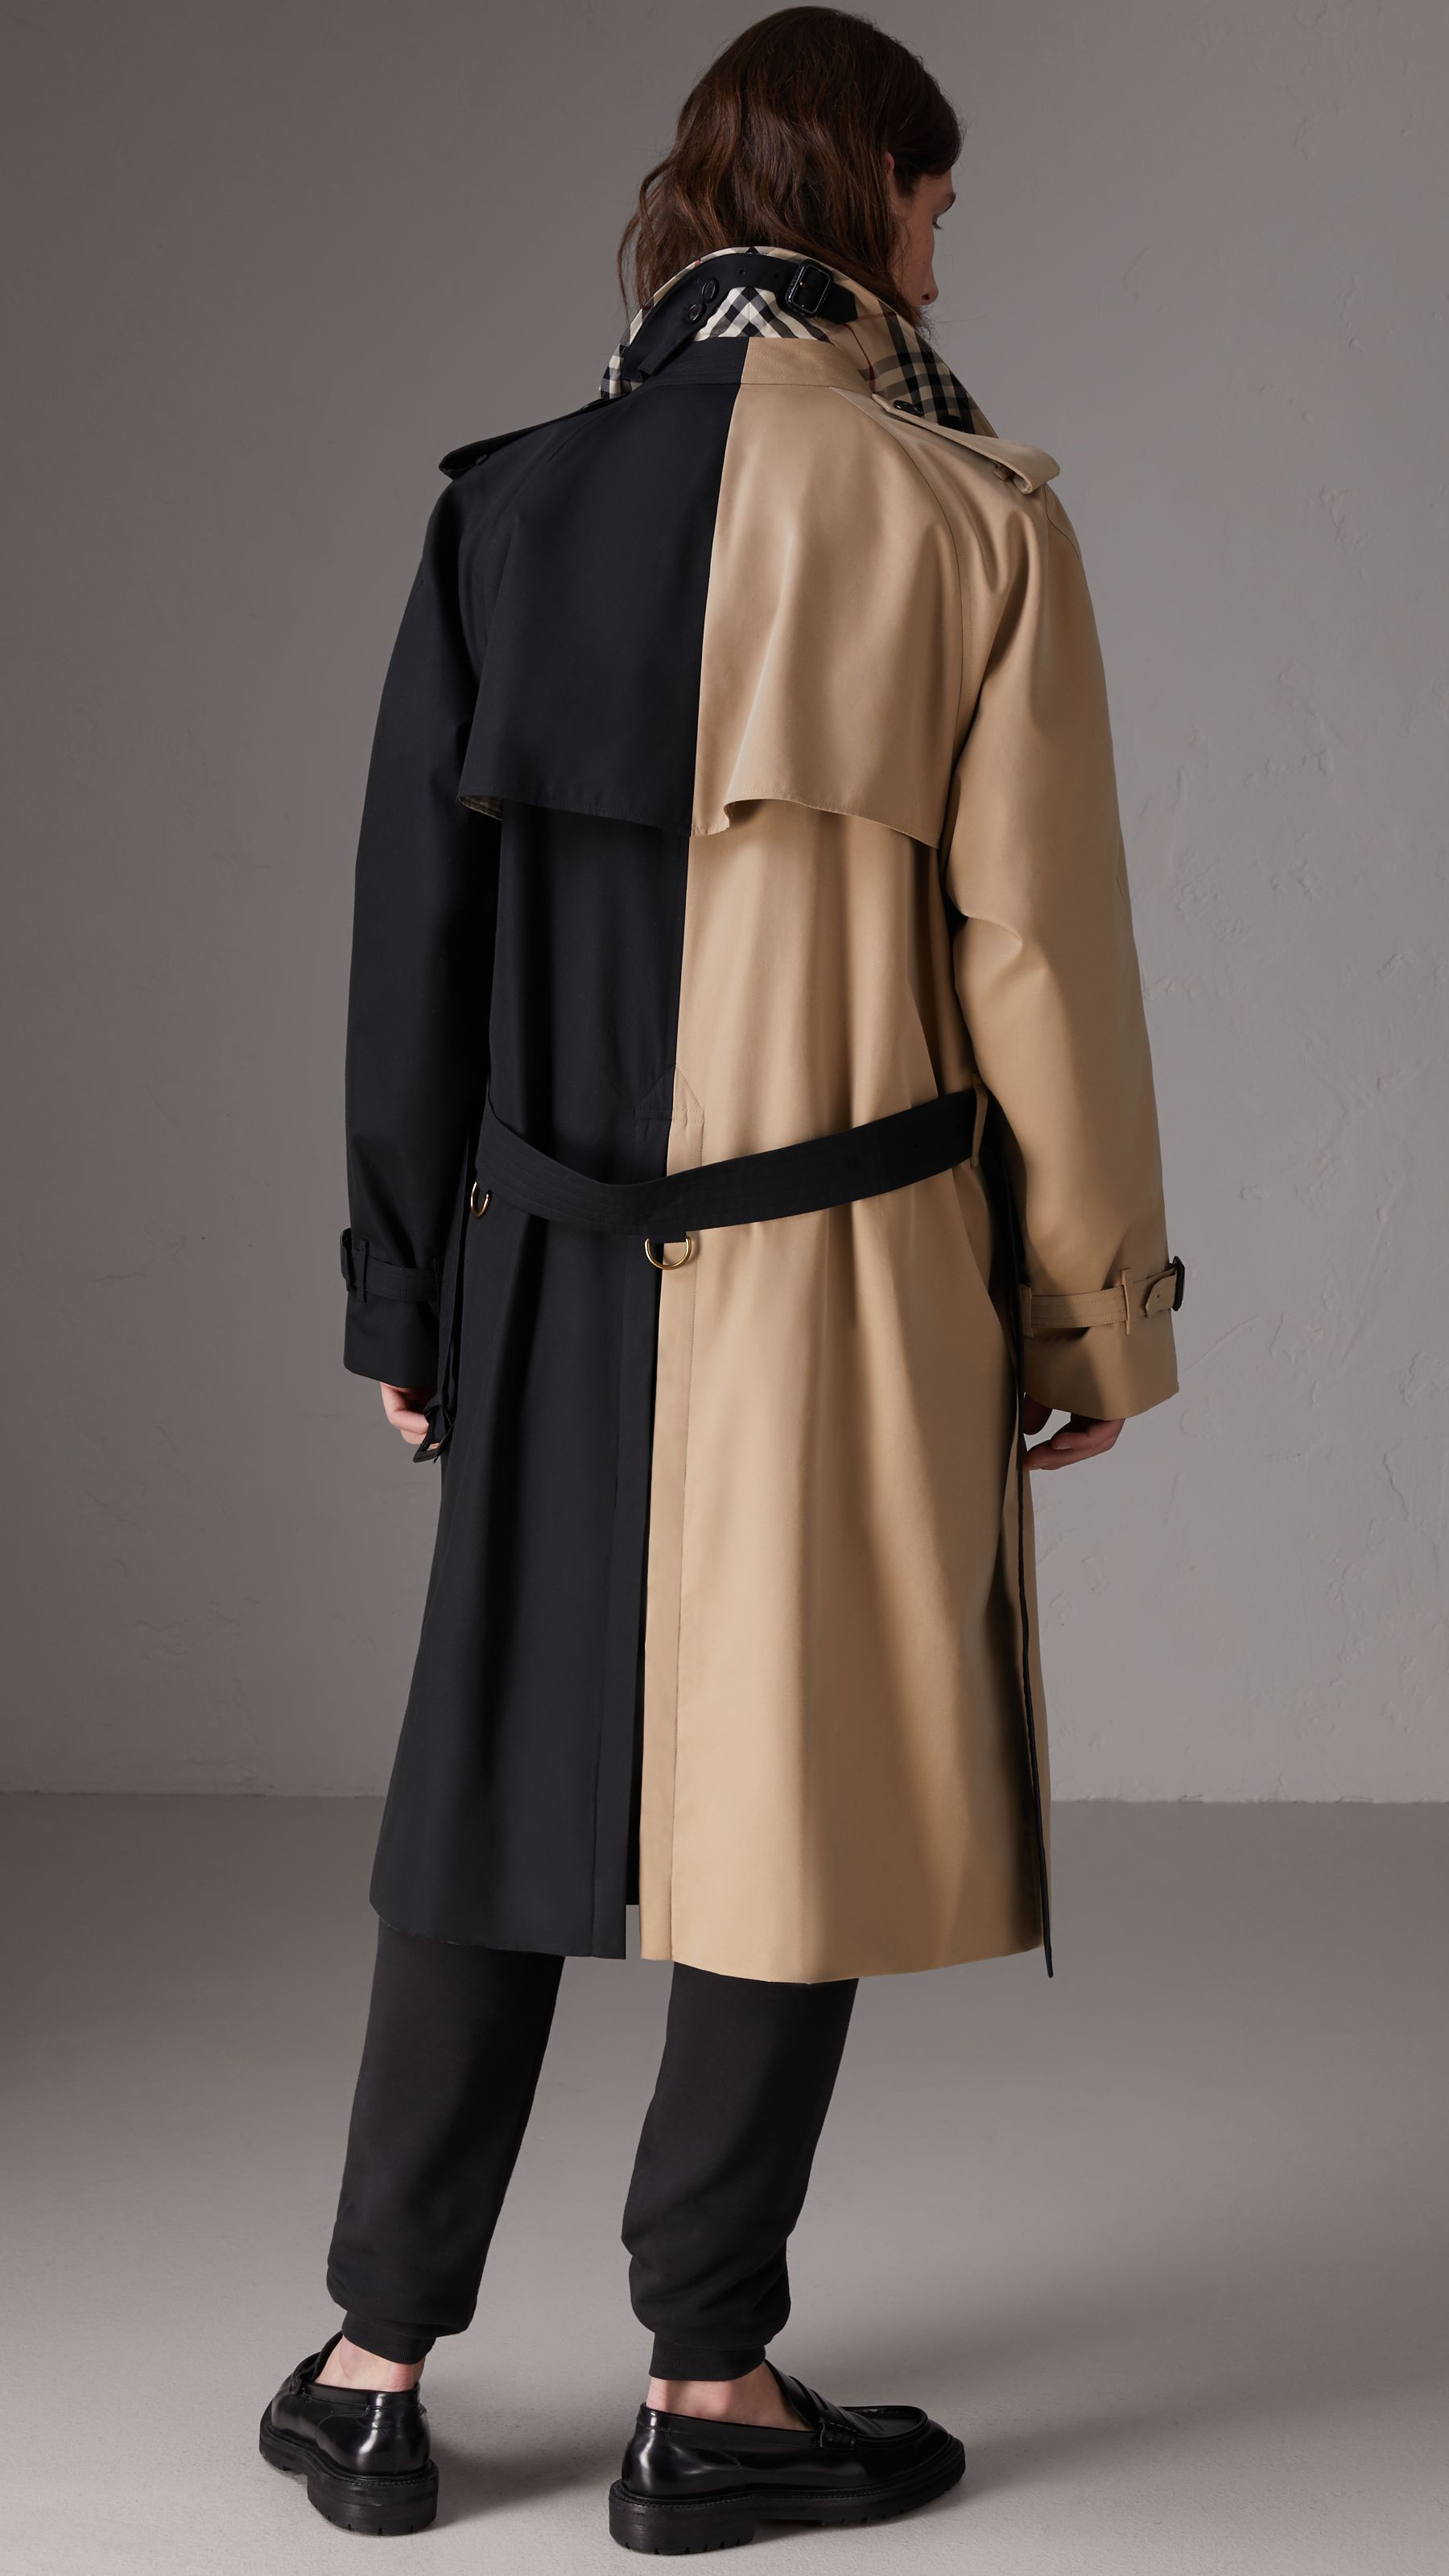 0813e07688b Two tone trench yes gawd 😭😍 Burberry • fashion • vibes • need • coat •  jacket •